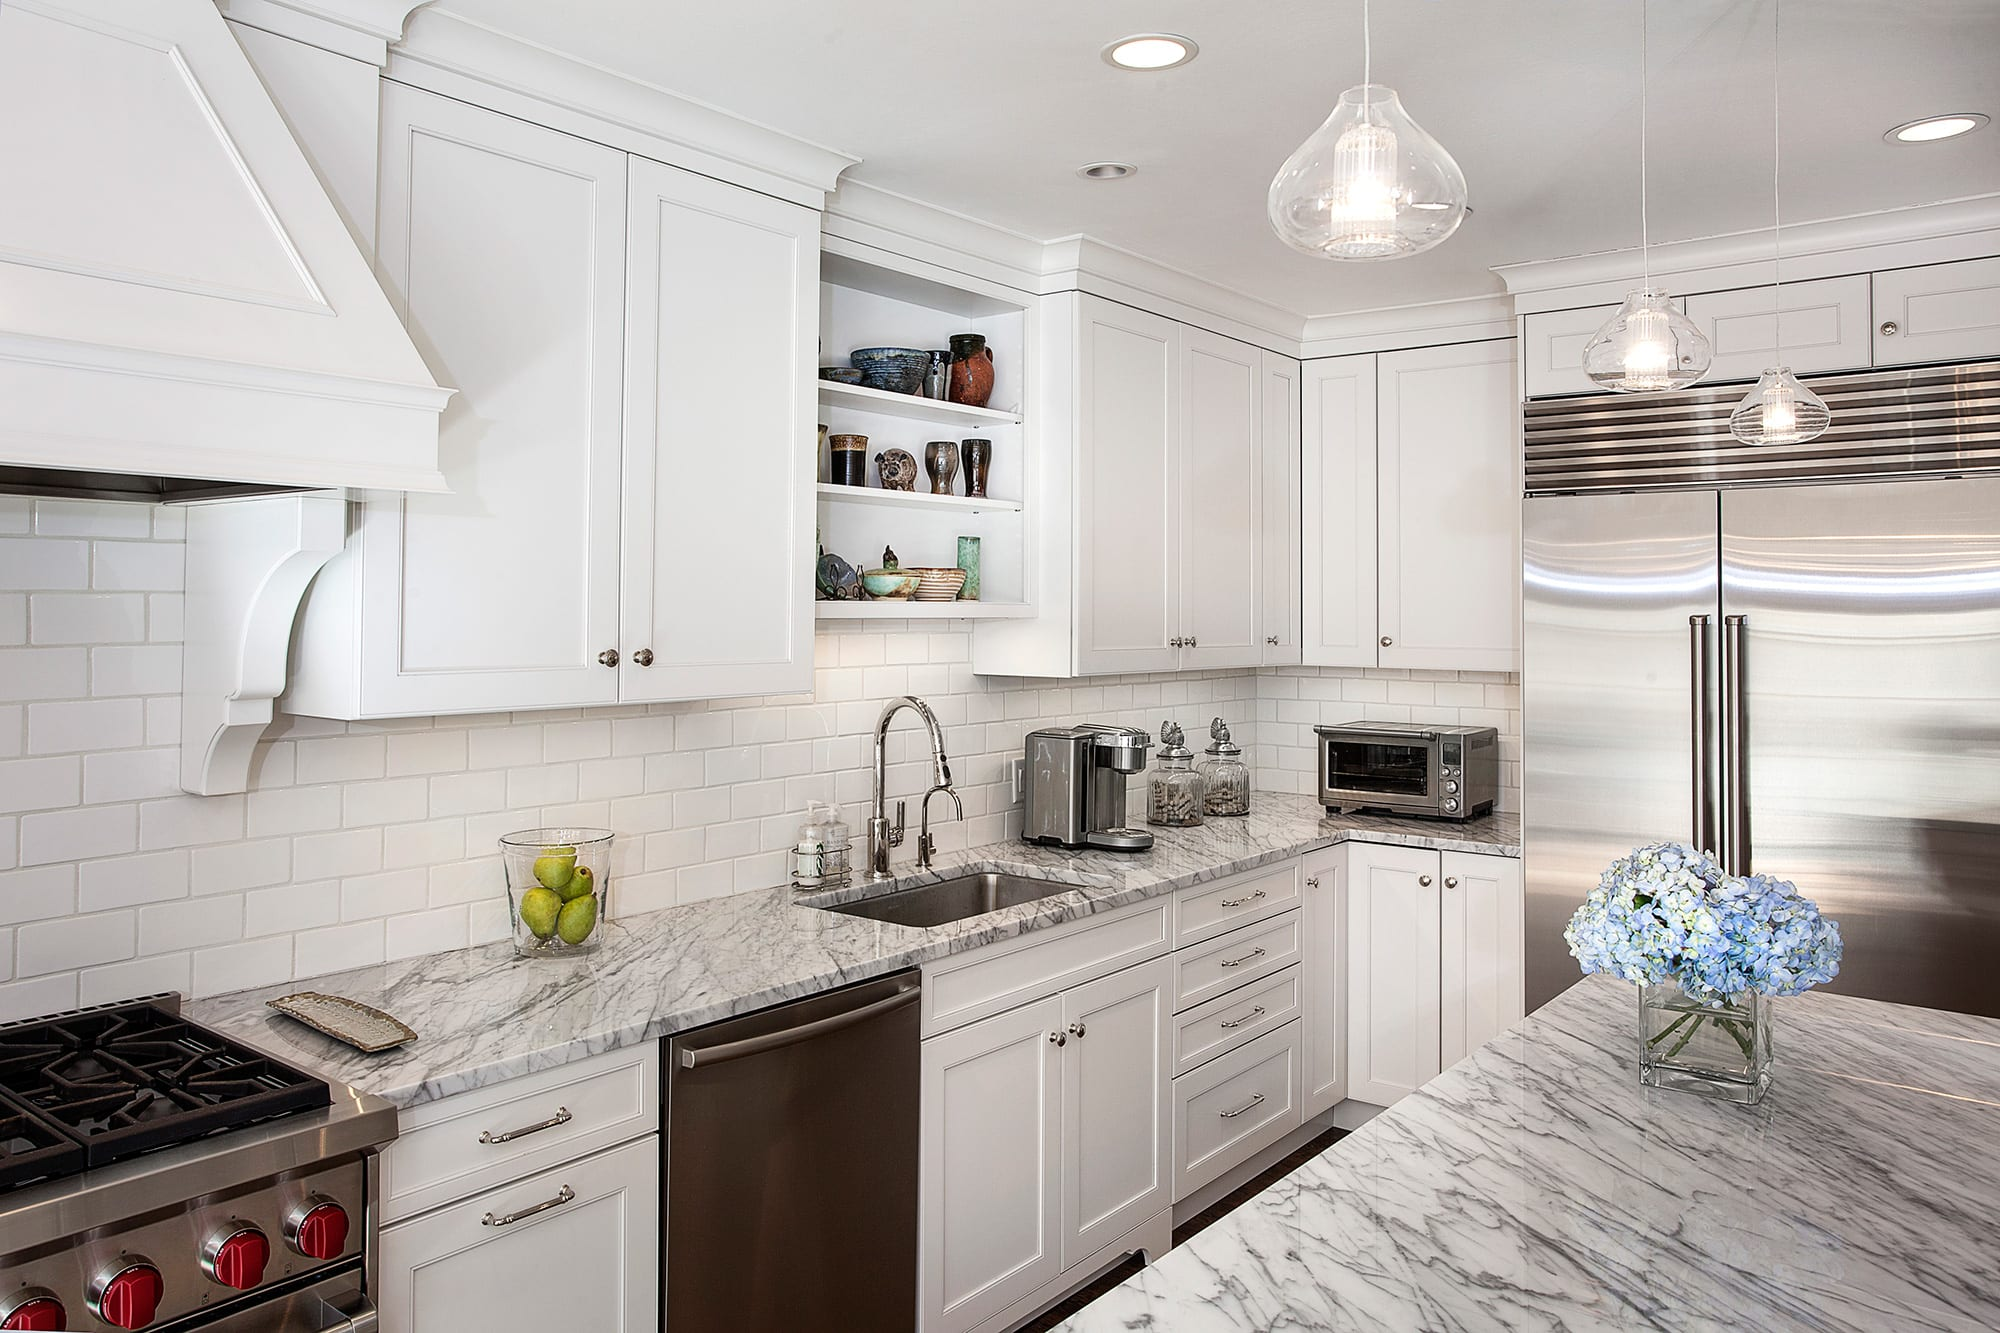 Woodmode Kitchen Cabinets Kitchen Cabinets Gallery Of Images And Ideas Cabinet